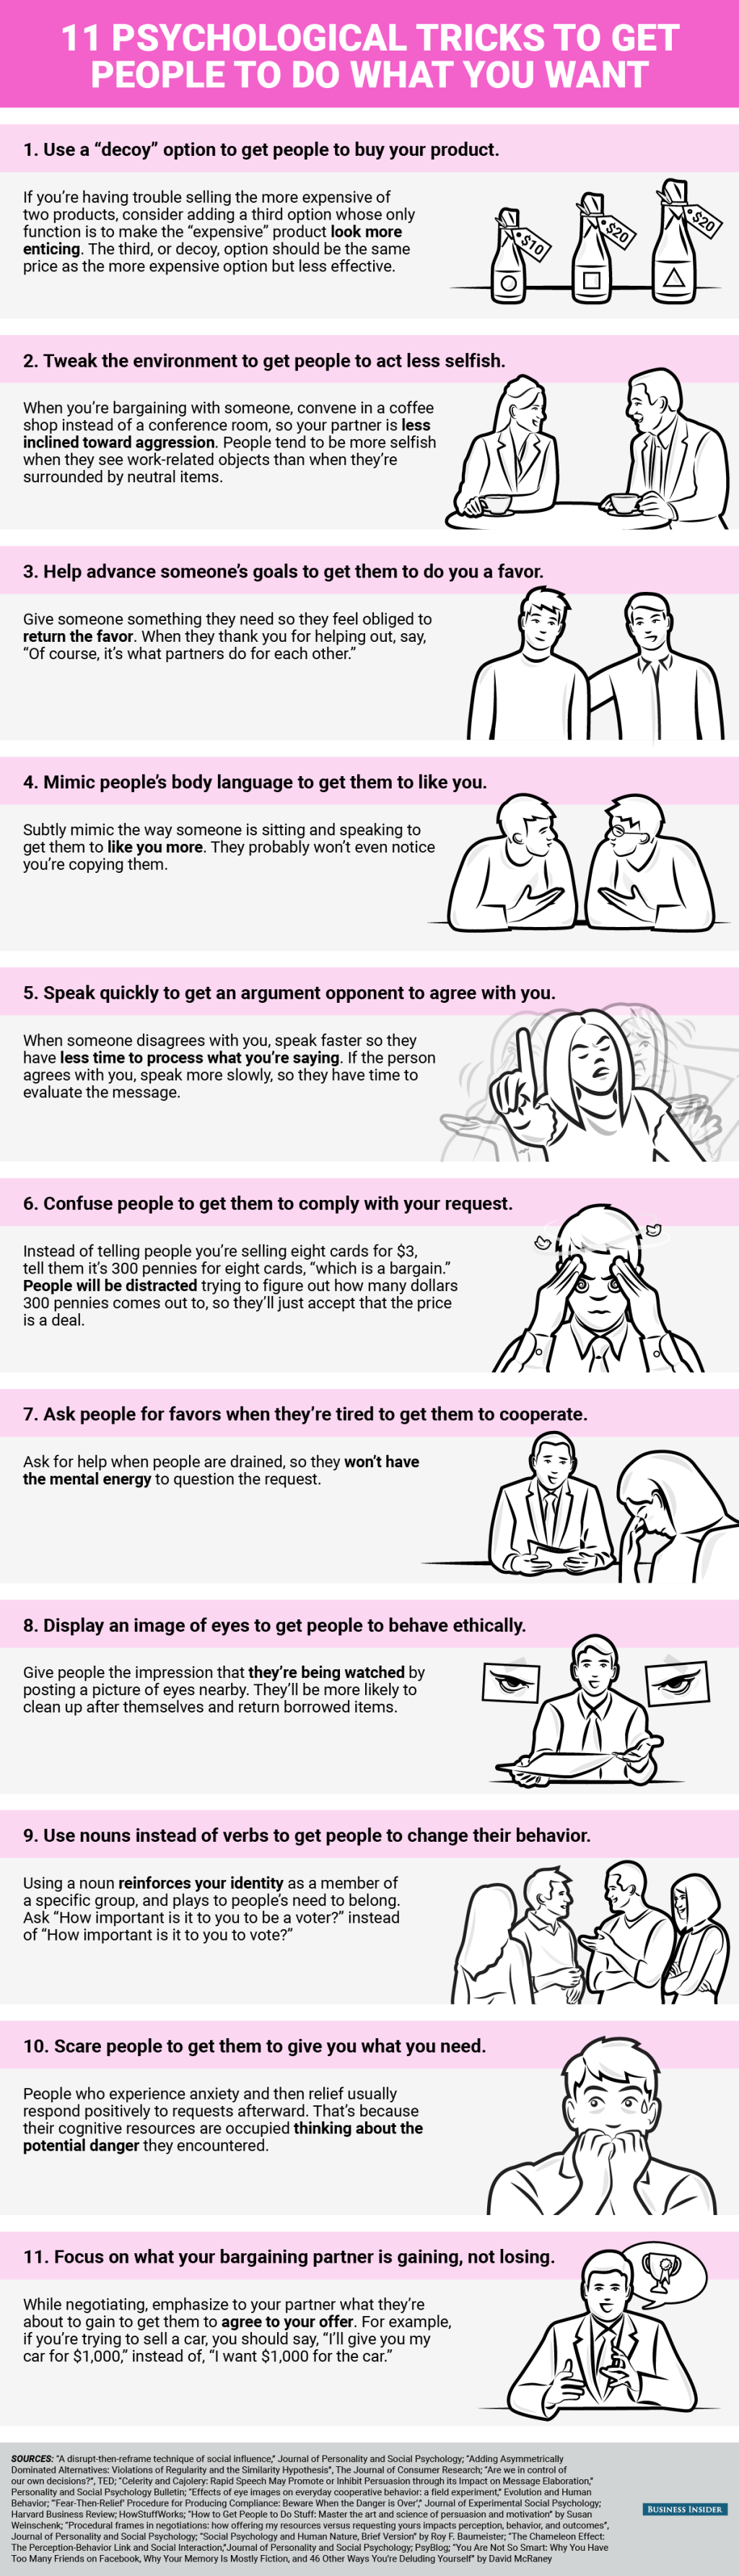 Infographic: 11 Psychological tricks to get people to do what you want